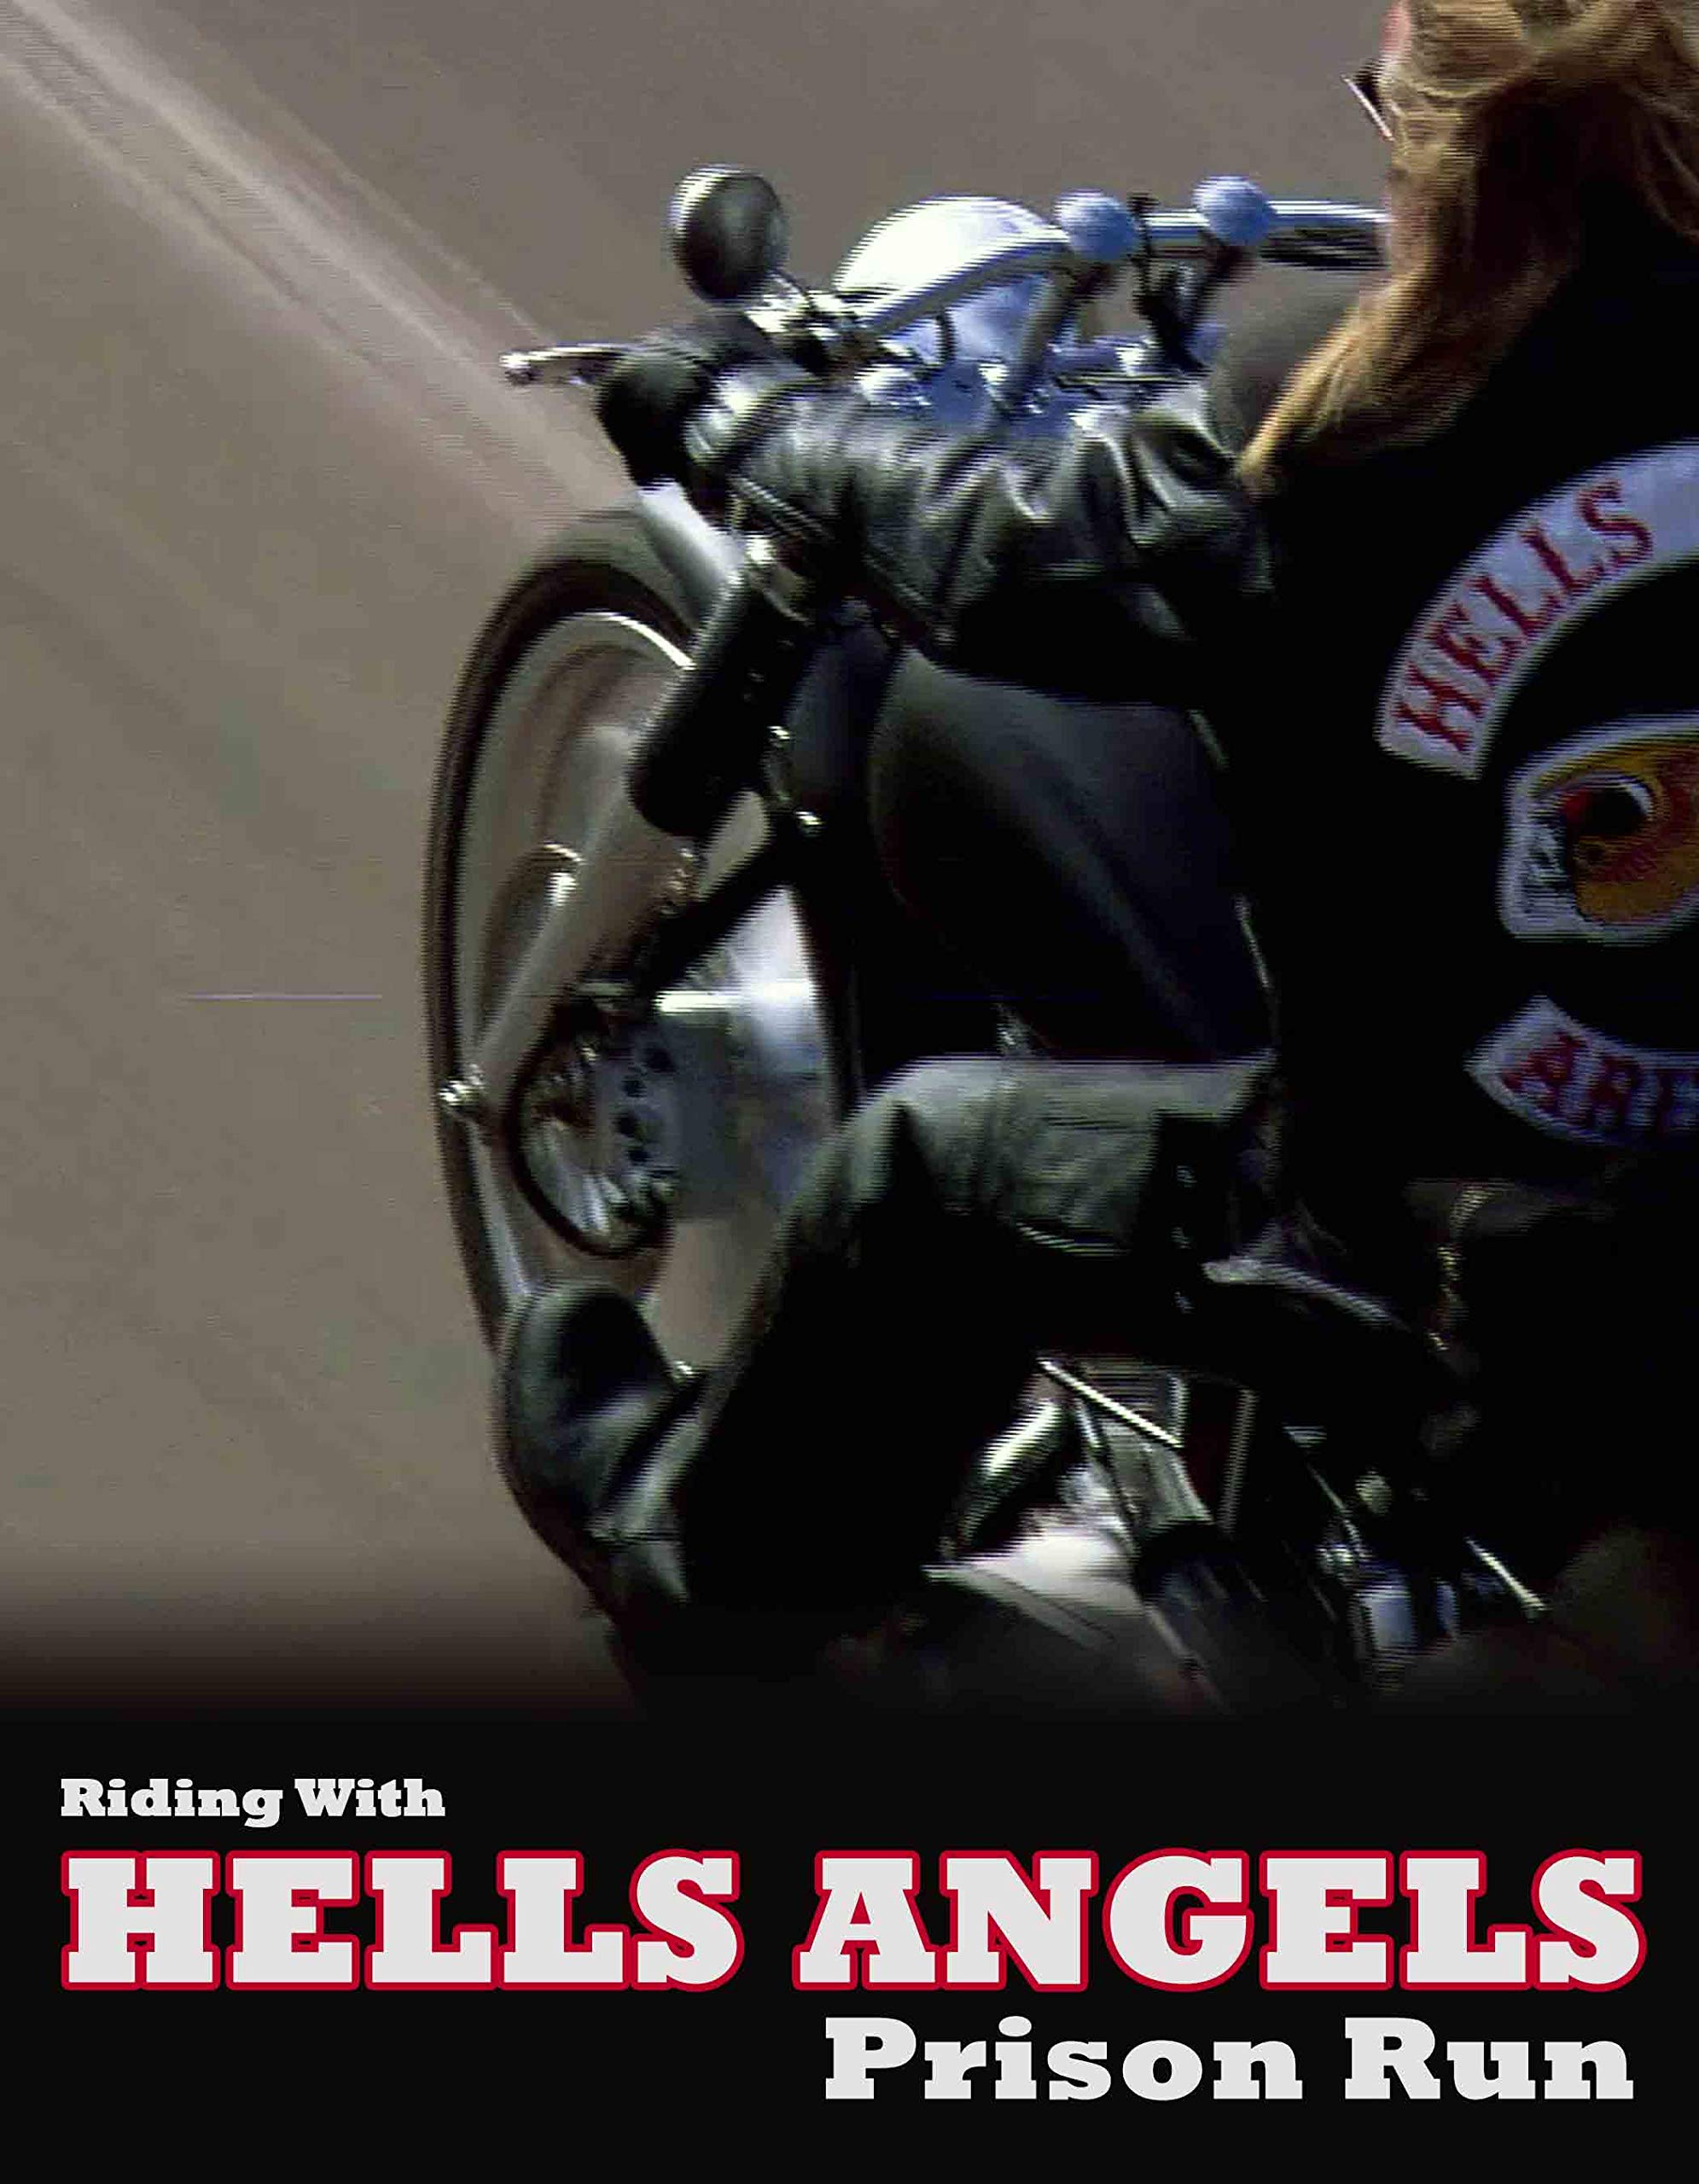 Riding With Hells Angels: Prison Run on Amazon Prime Video UK